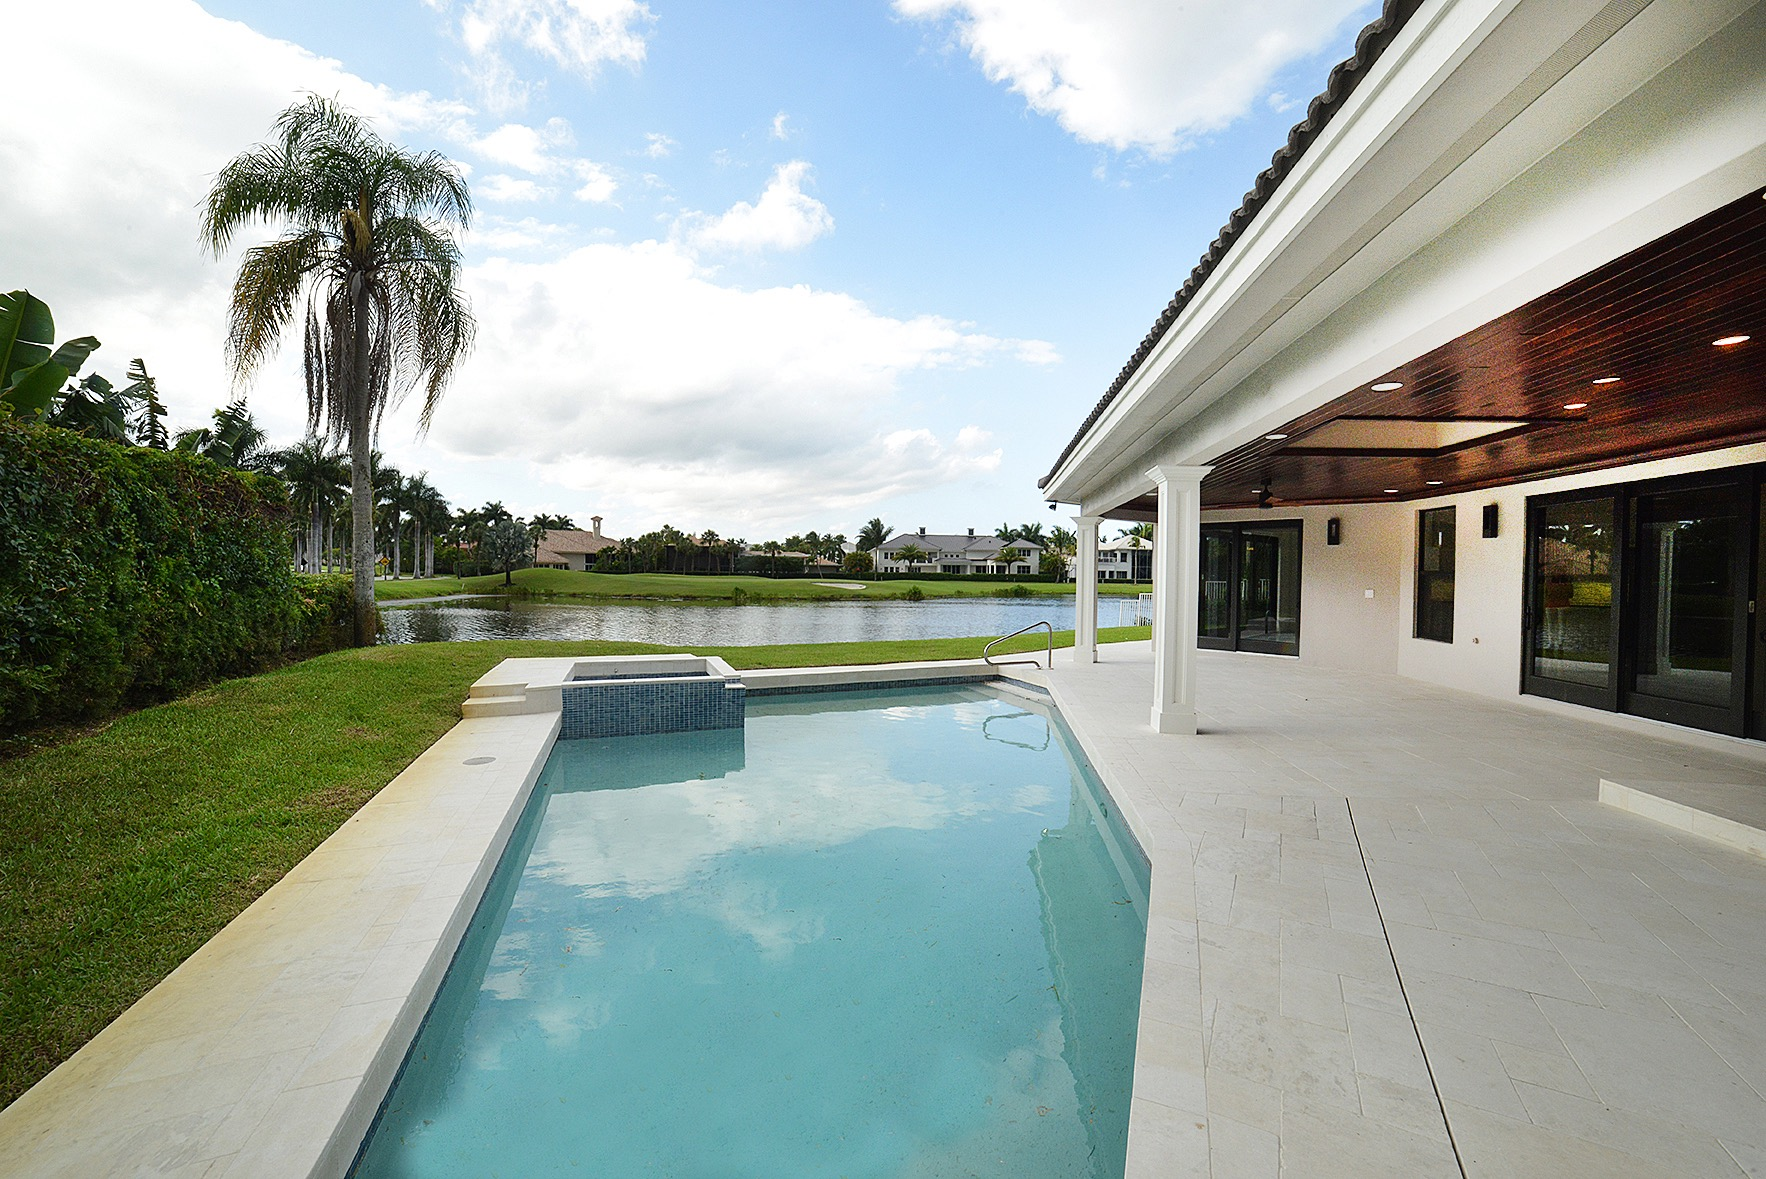 mag real estate & development construction general contractor builder renovation south florida boca raton new custom luxury home for sale interior design st. andrews country club 7026 ayrshire lane 25.jpg